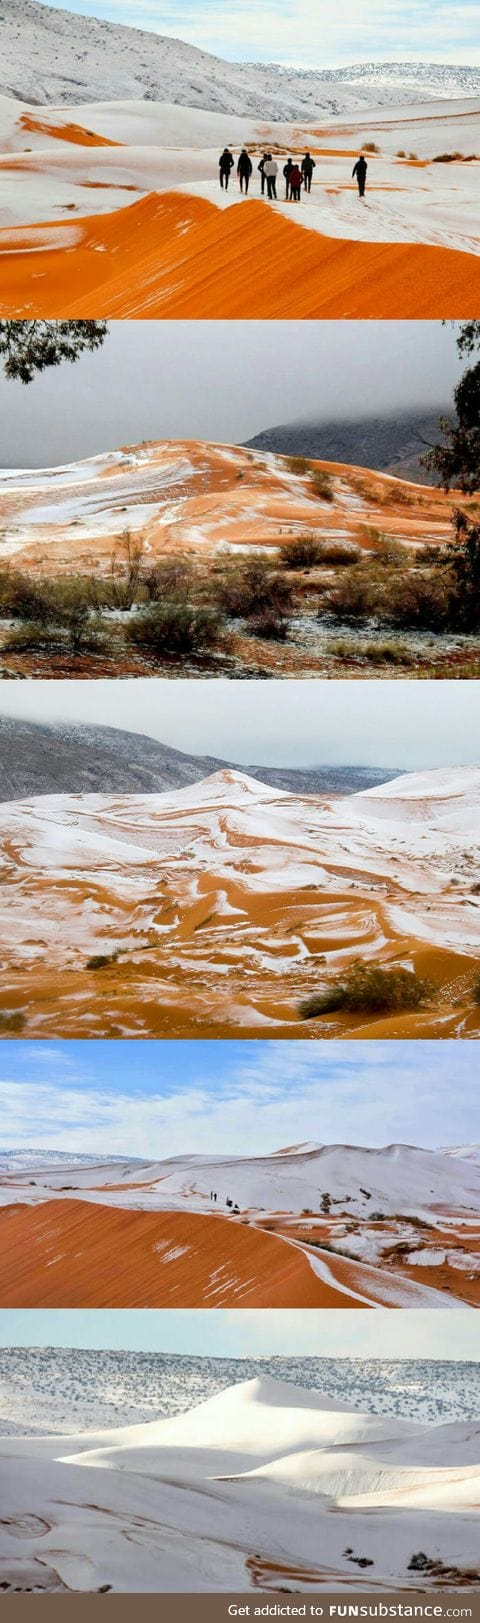 Snow in Sahara. Yup. We definitely need some of that global warming.